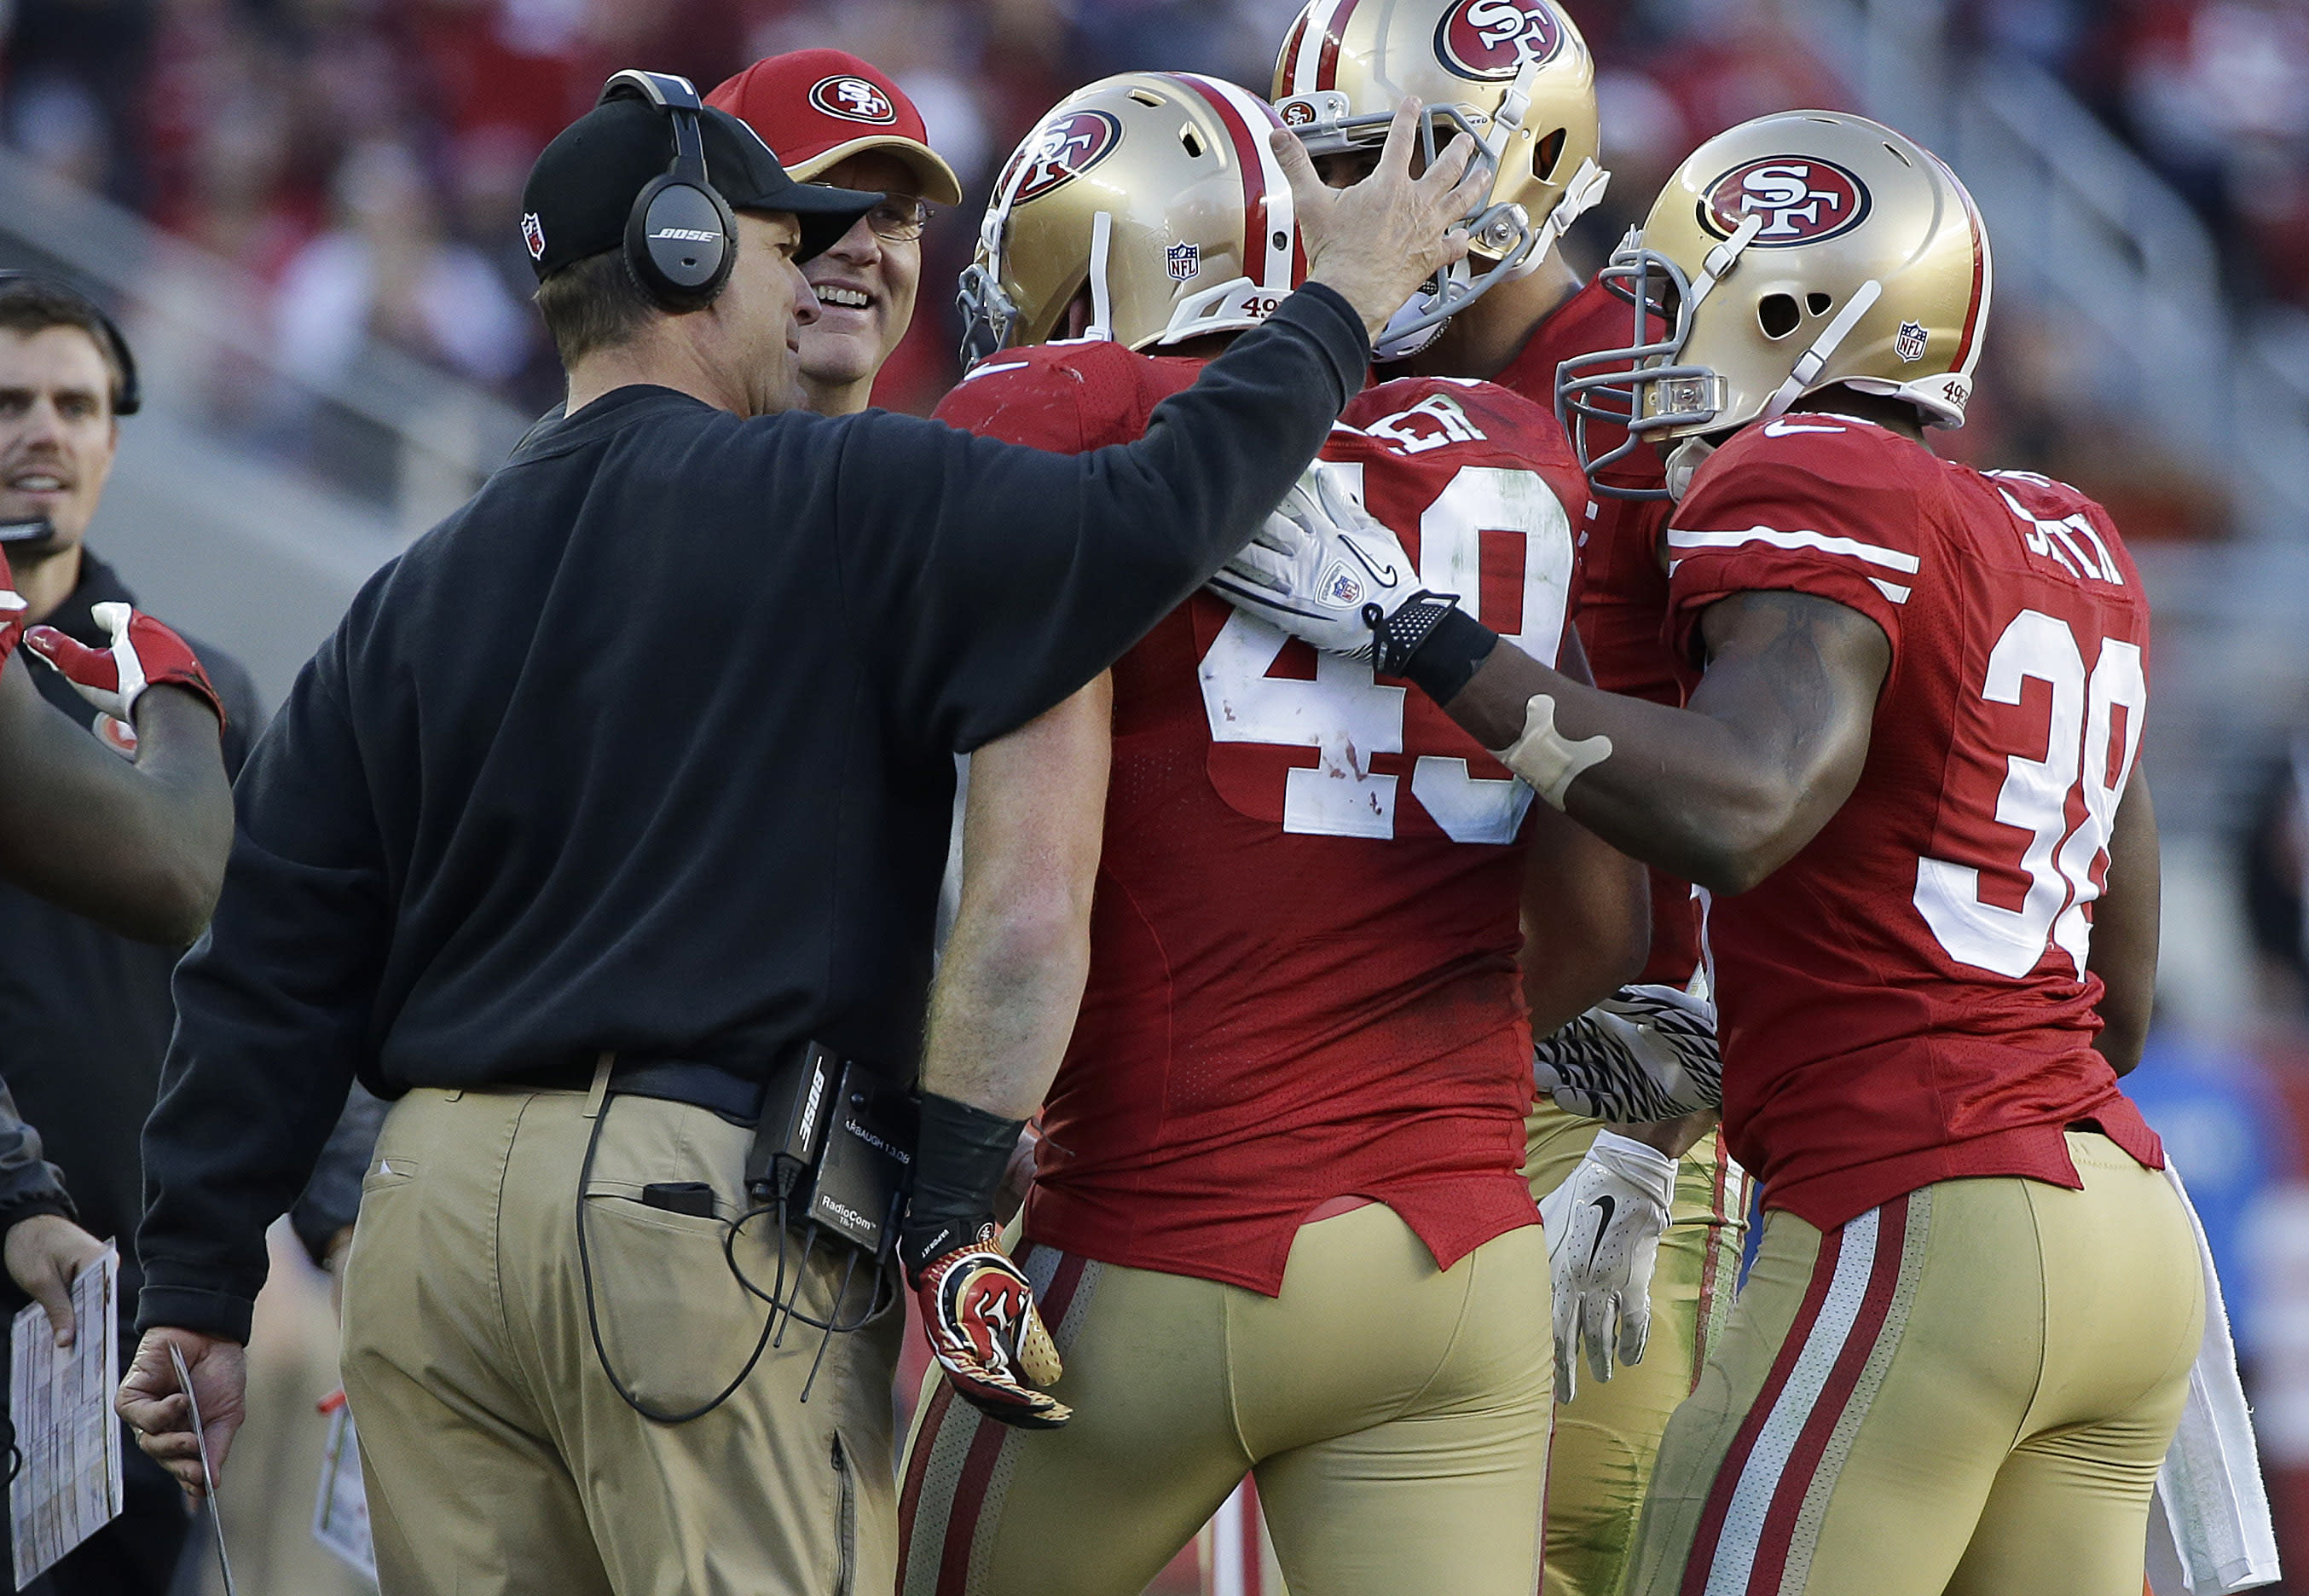 49ers win 20-17 in Jim Harbaugh's last game